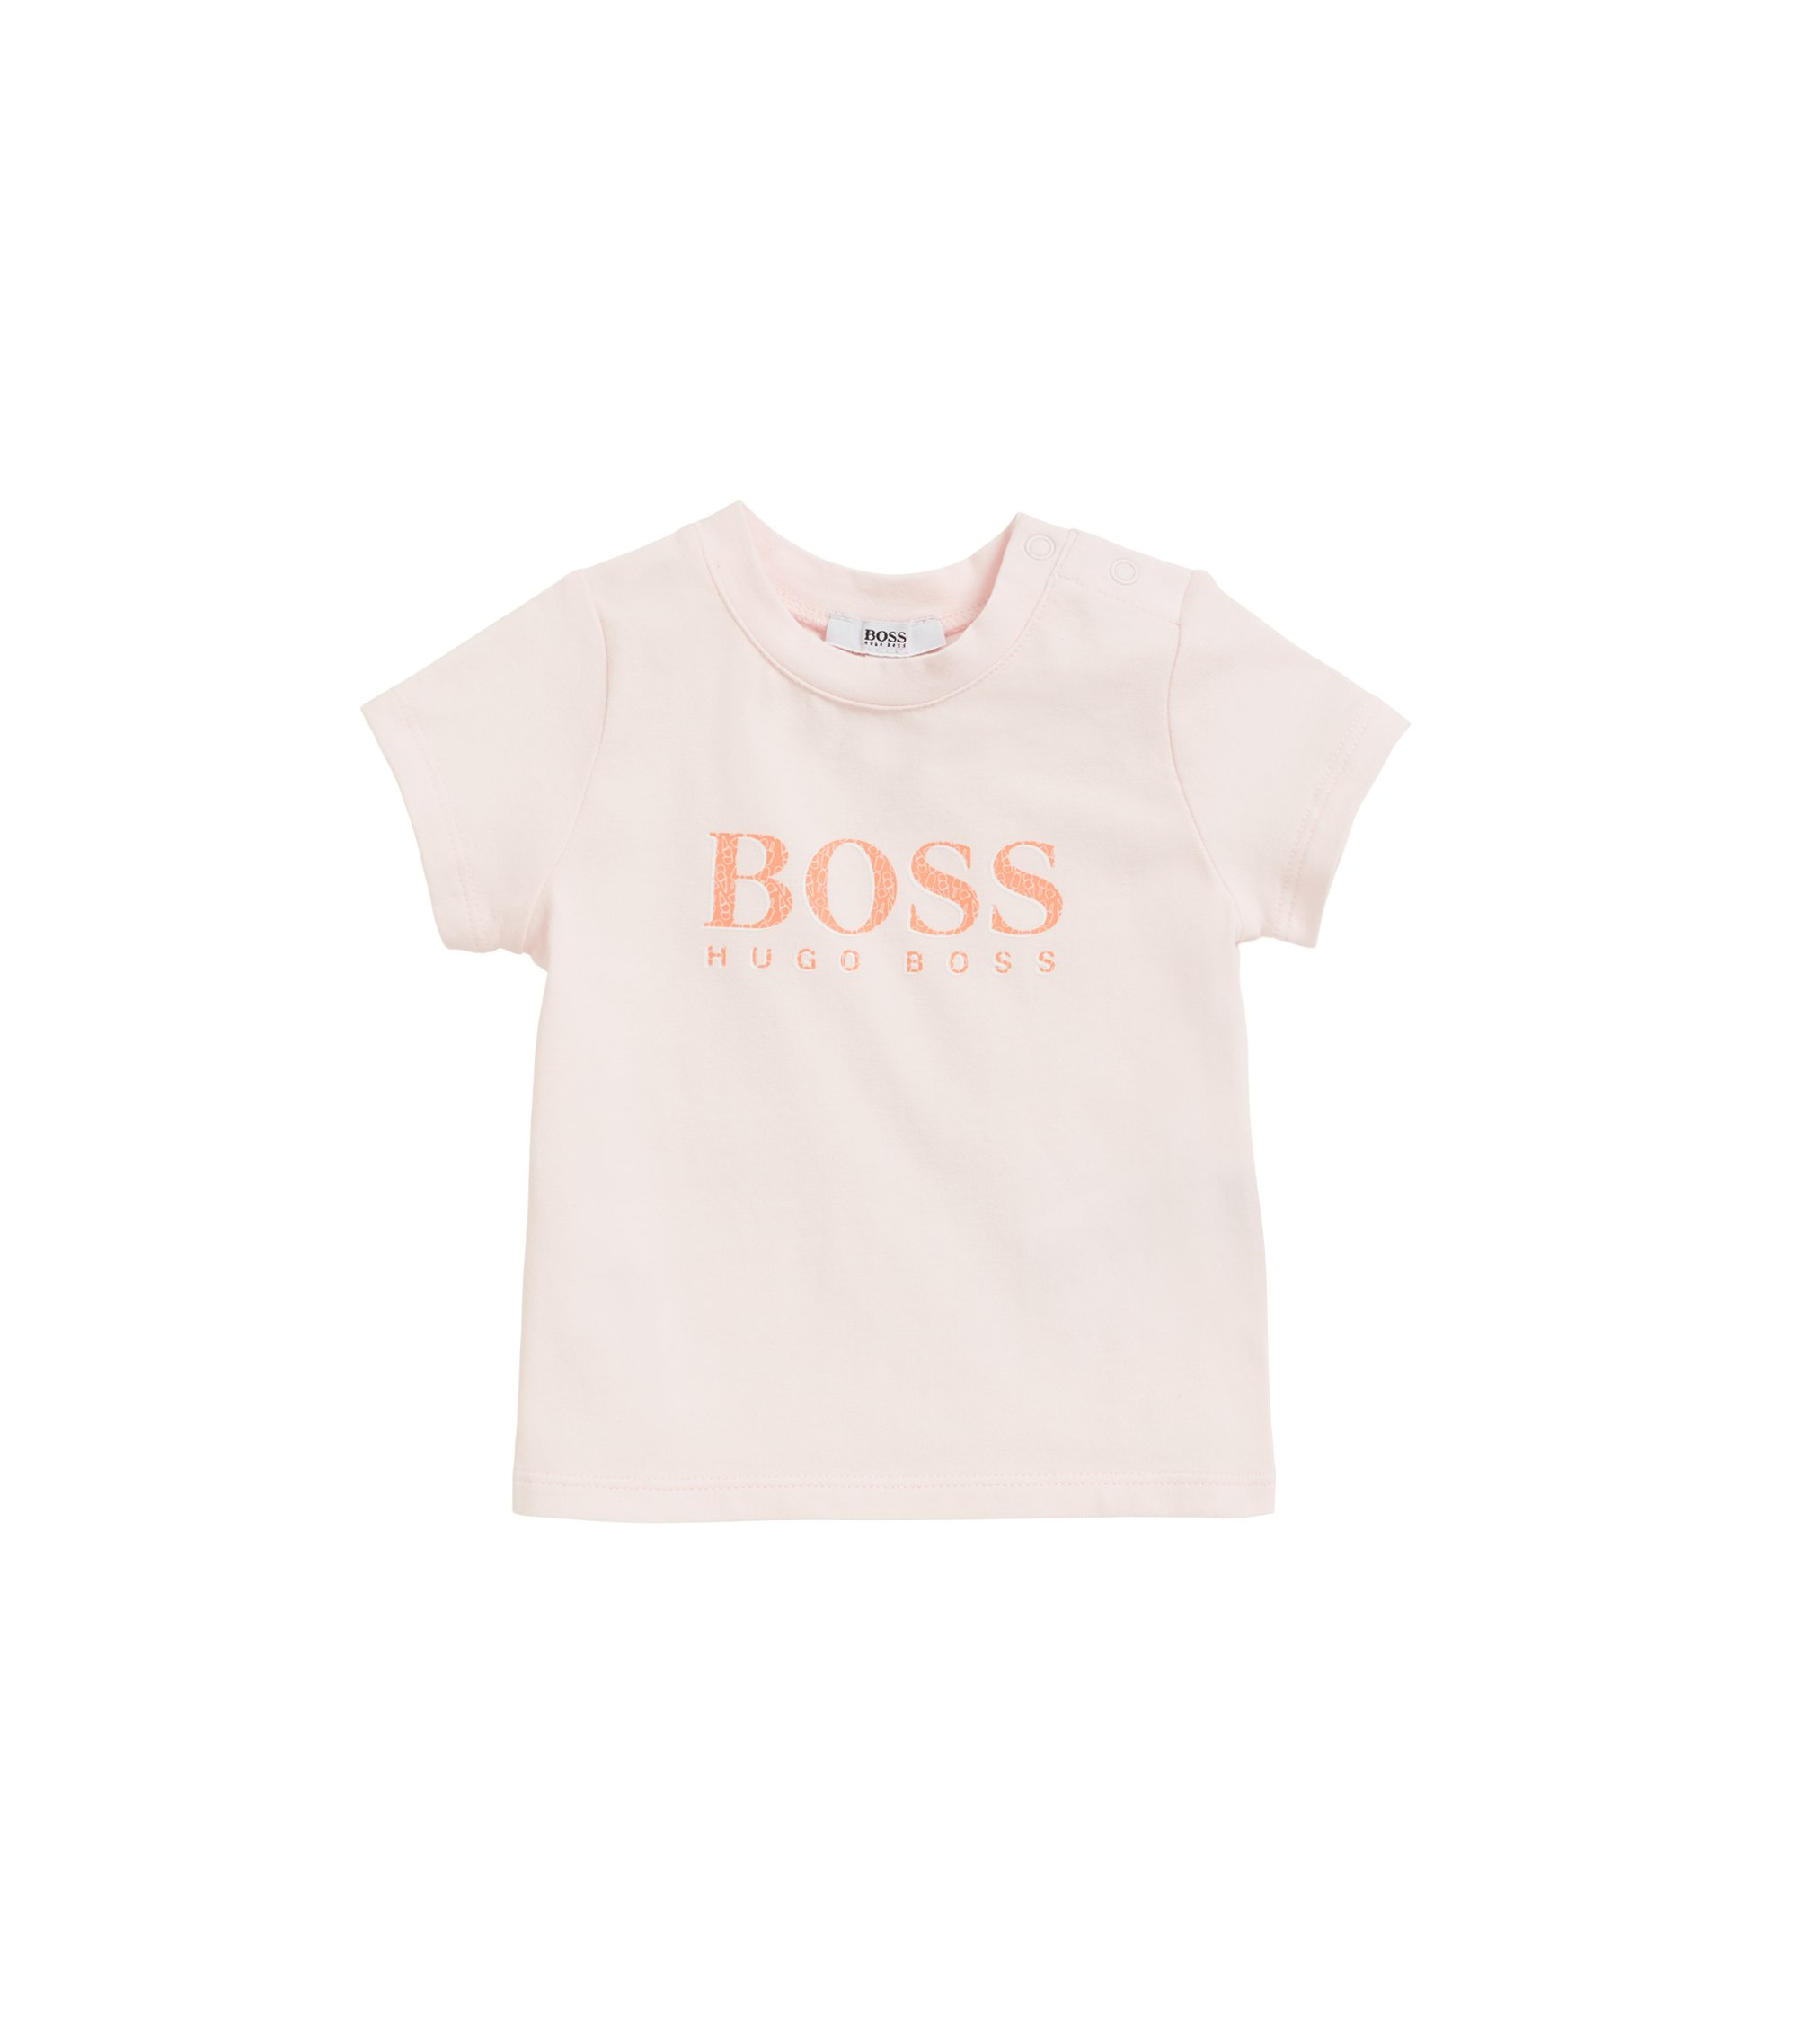 Baby T-shirt in stretch-cotton jersey with logo print, light pink